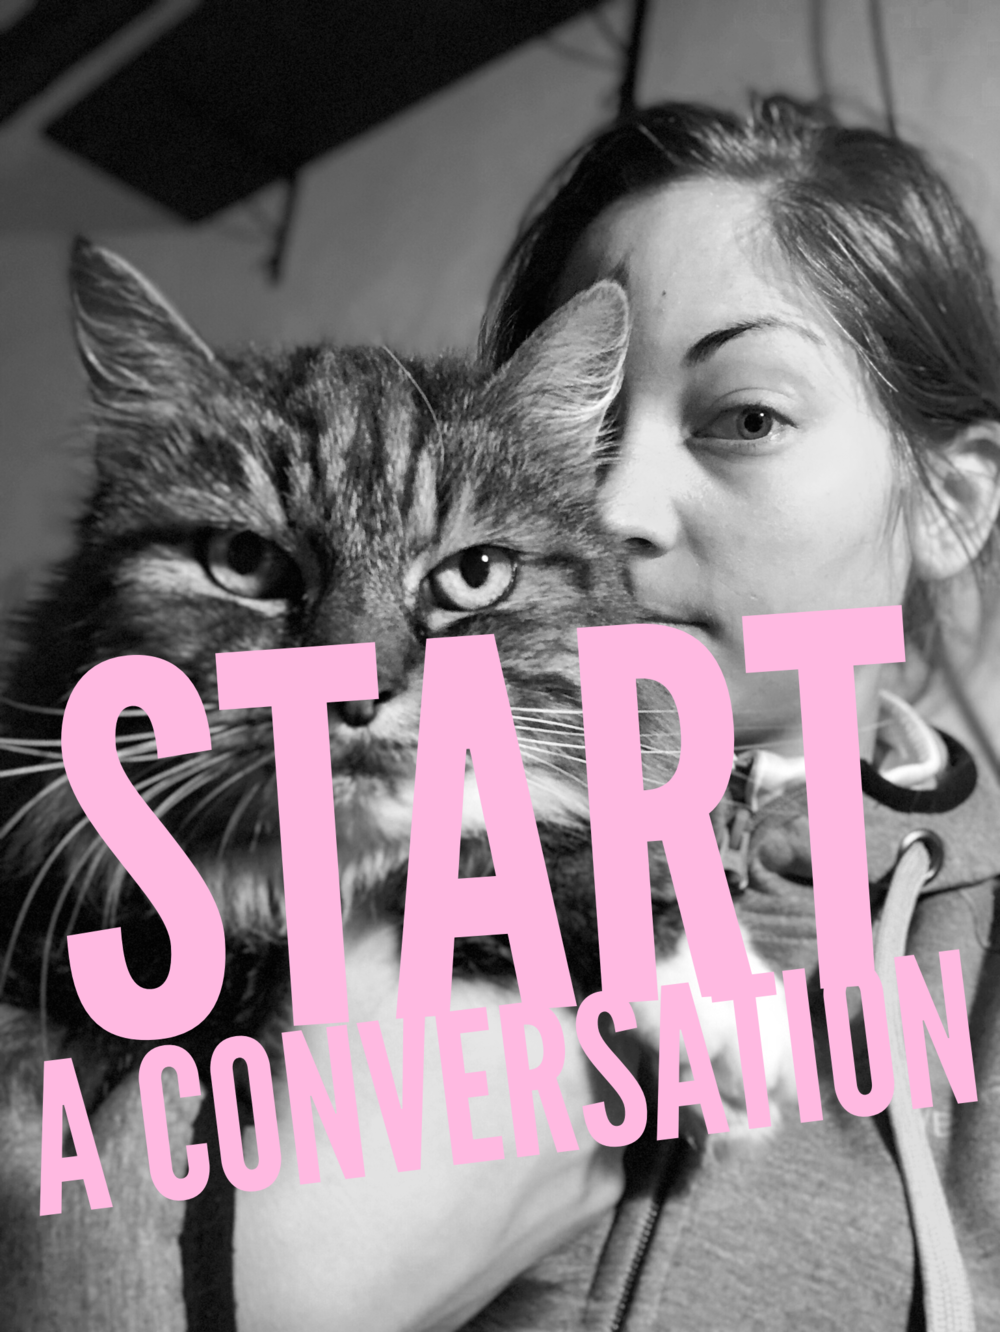 20171204 start a conversation Isa olsson.png